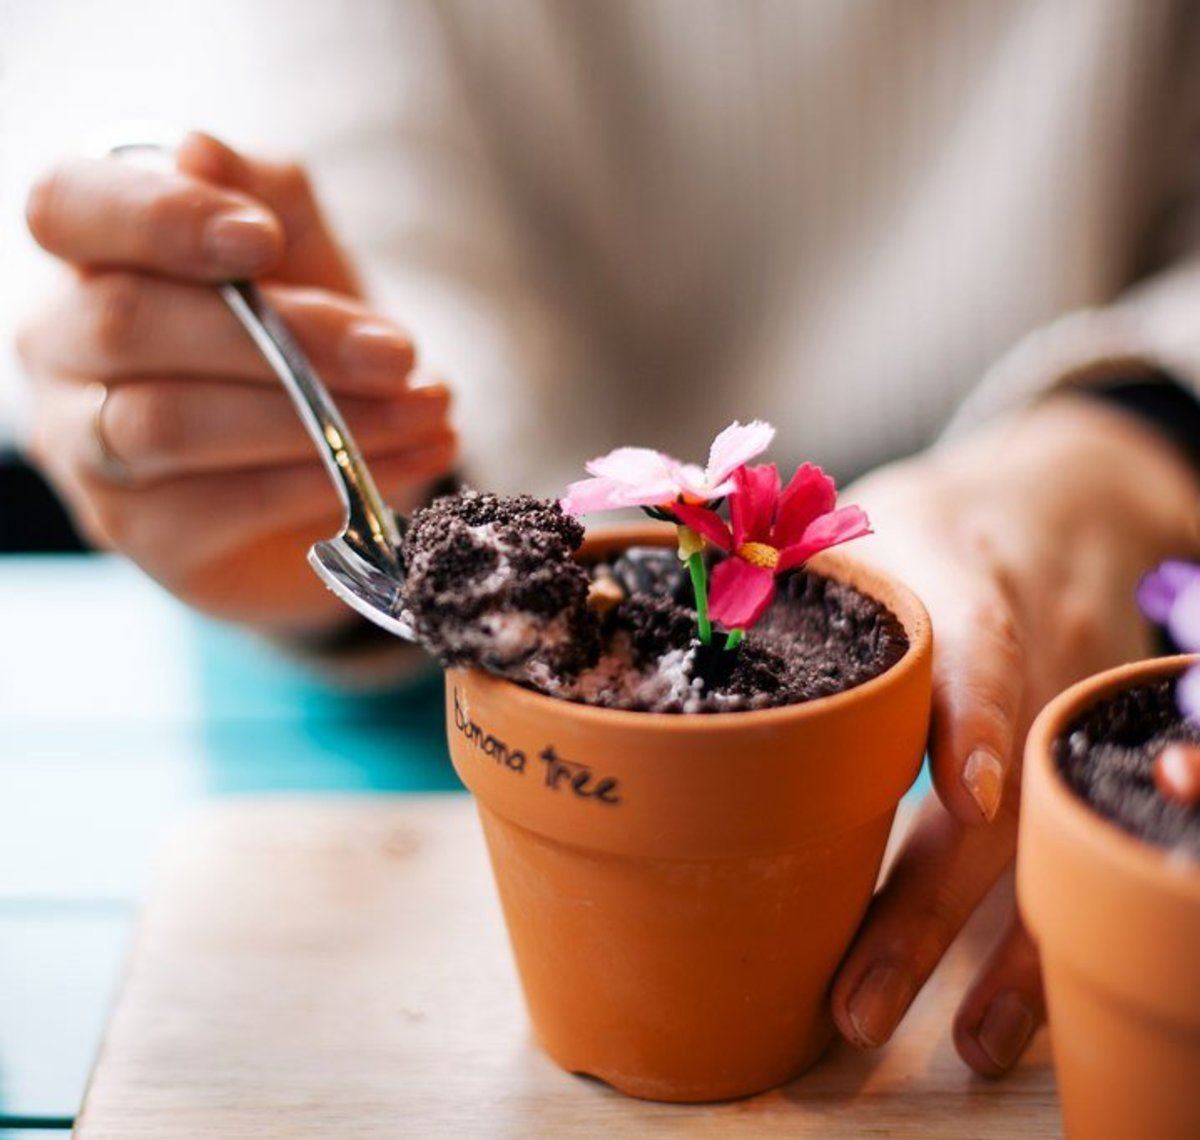 Ice cream cake in a flower pot is an easy but impressive Mother's Day gift.